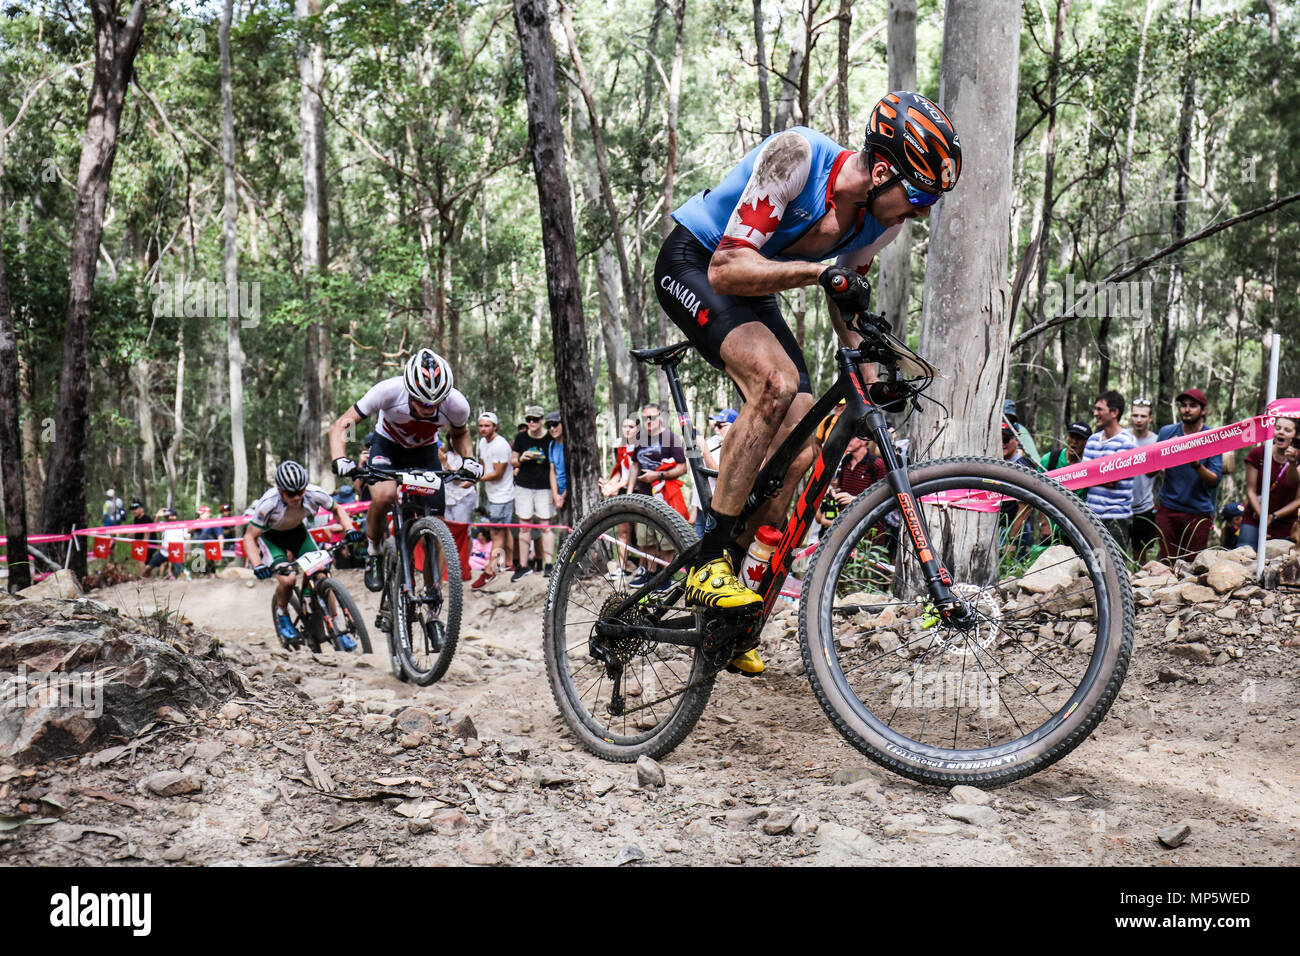 GOLD COAST, AUSTRALIA - APRIL 12: Leandre BOUCHARD (CAN) tackles the hills during the Men's Cross Country Mountain Biking on April 12th 2018 - Stock Image